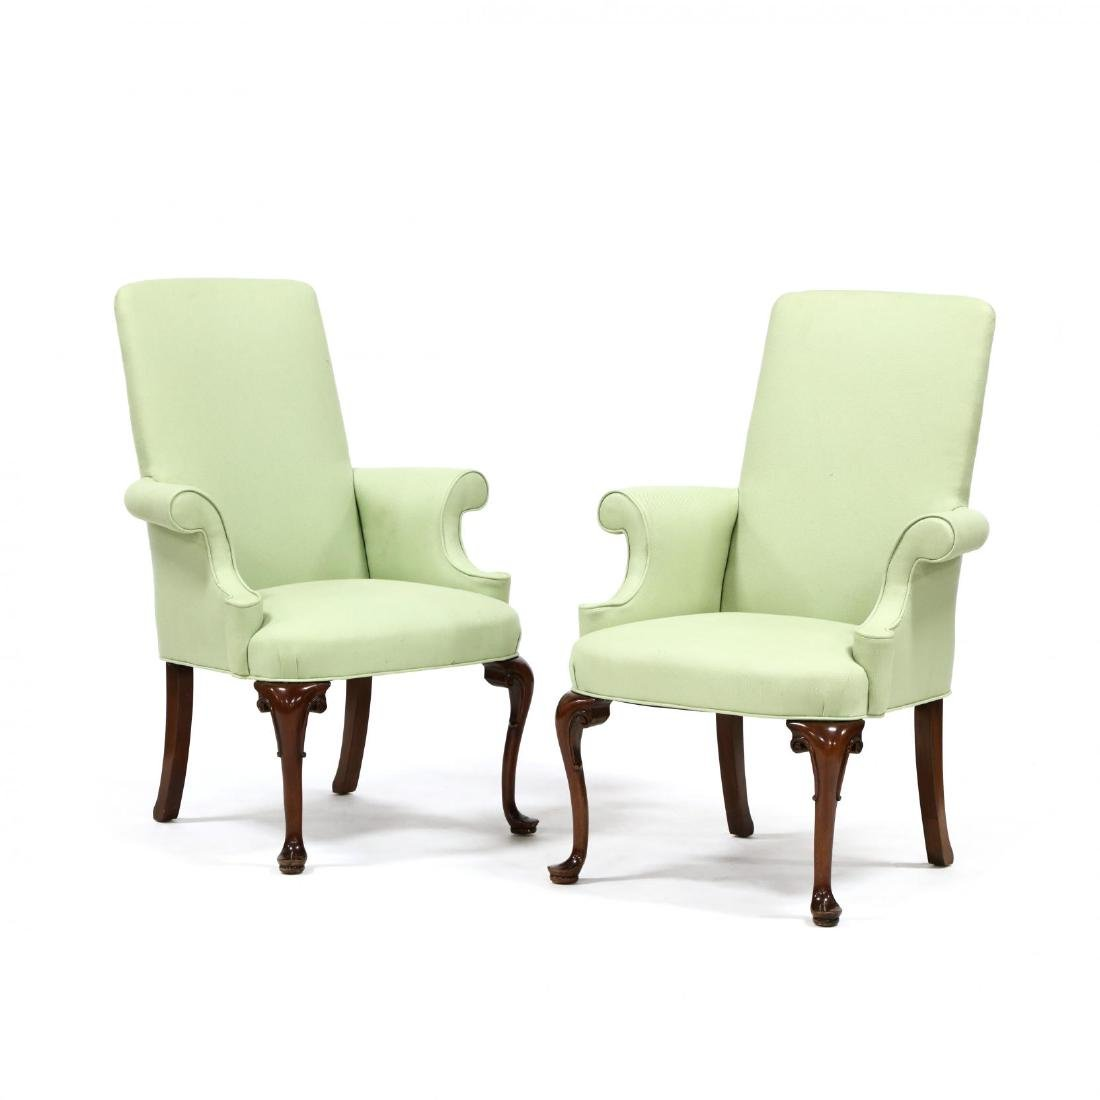 Pair of Queen Anne Style Lolling Chairs